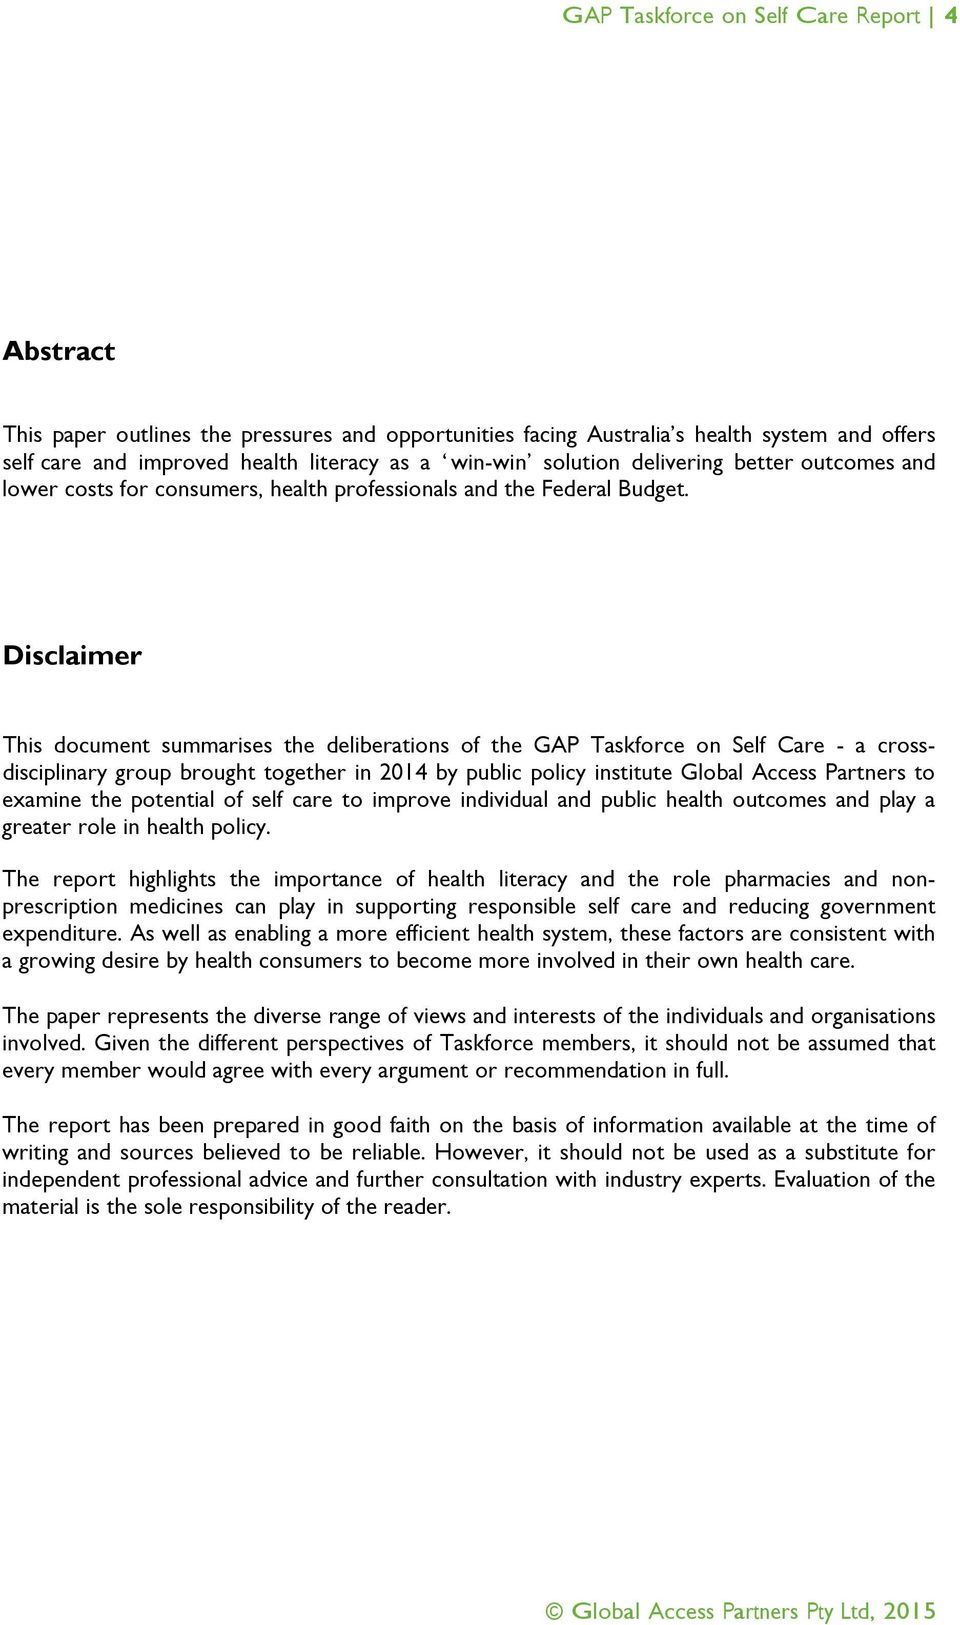 Disclaimer This document summarises the deliberations of the GAP Taskforce on Self Care - a crossdisciplinary group brought together in 2014 by public policy institute Global Access Partners to